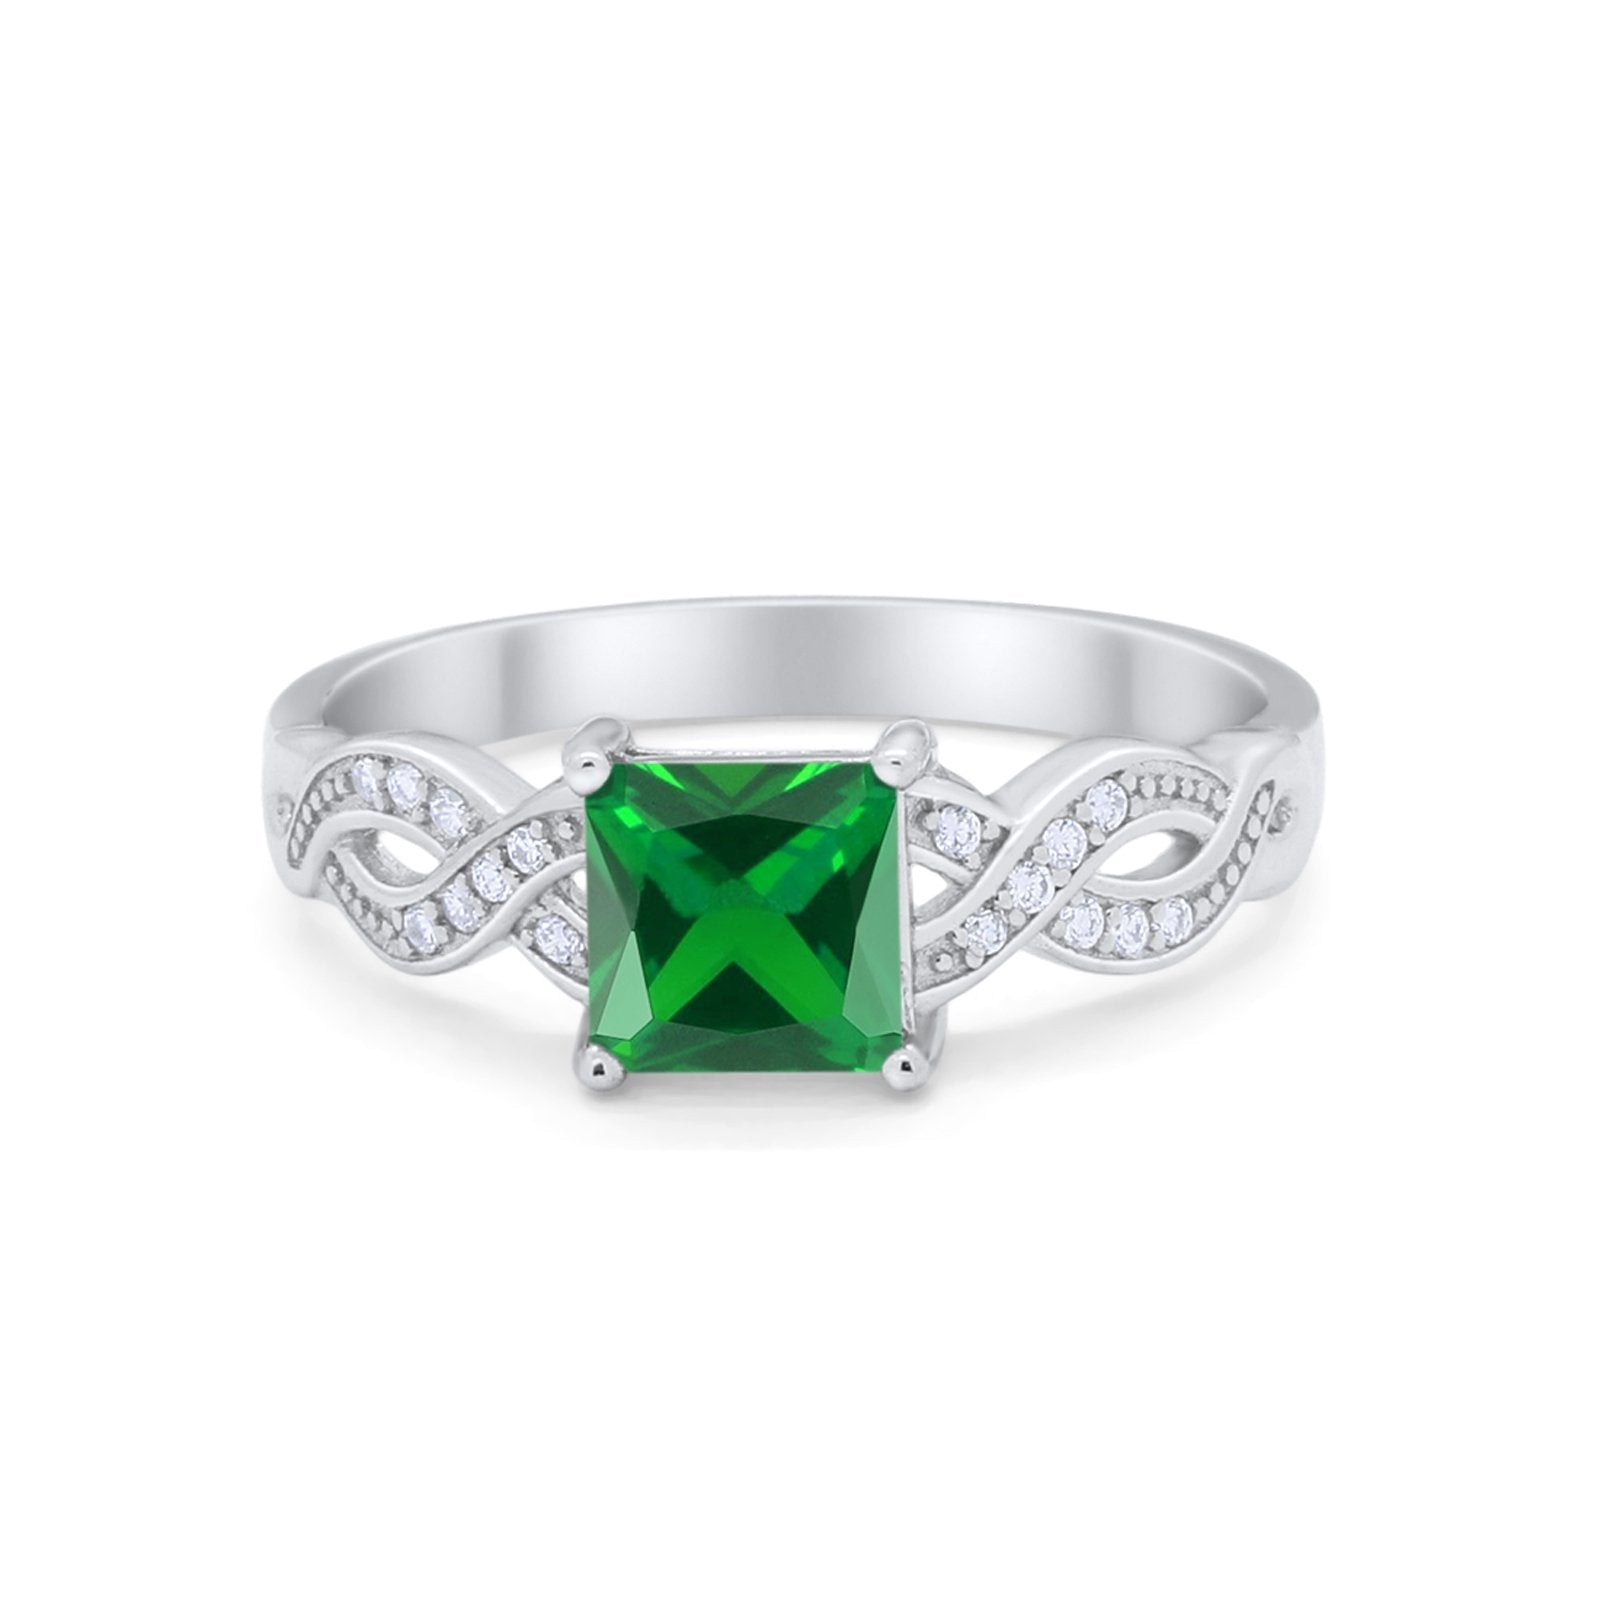 Solitaire Infinity Shank Ring Princess Cut Simulated Green Emerald CZ 925 Sterling Silver